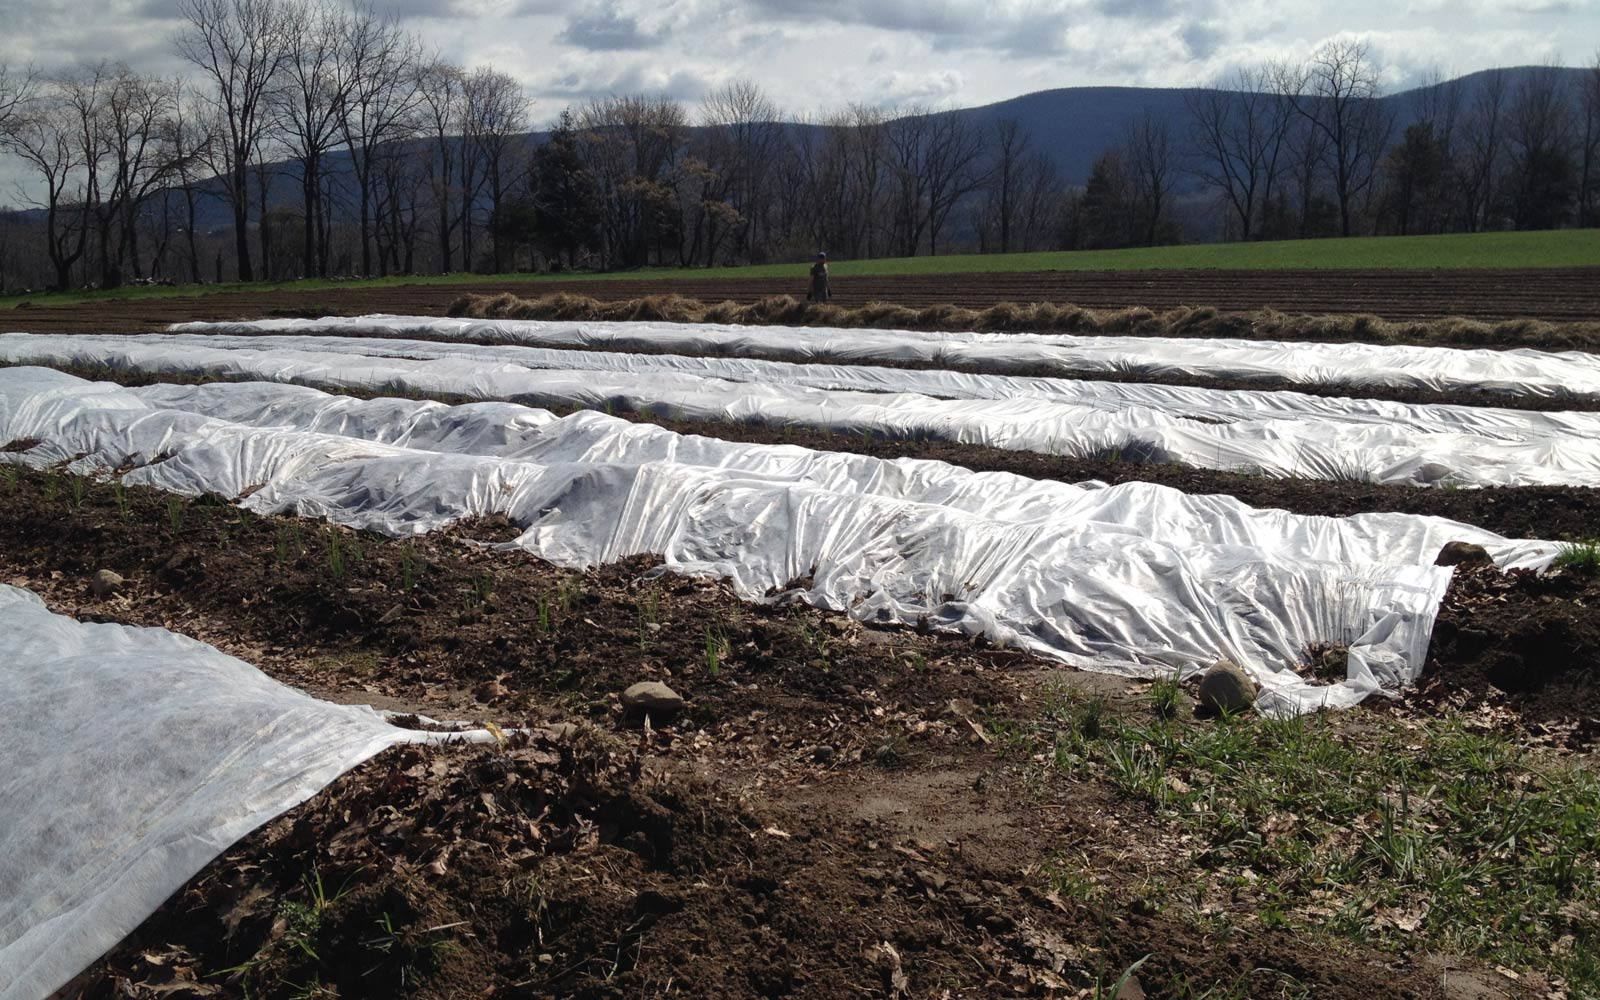 vernon valley farm - vegetable bed covered with tarp